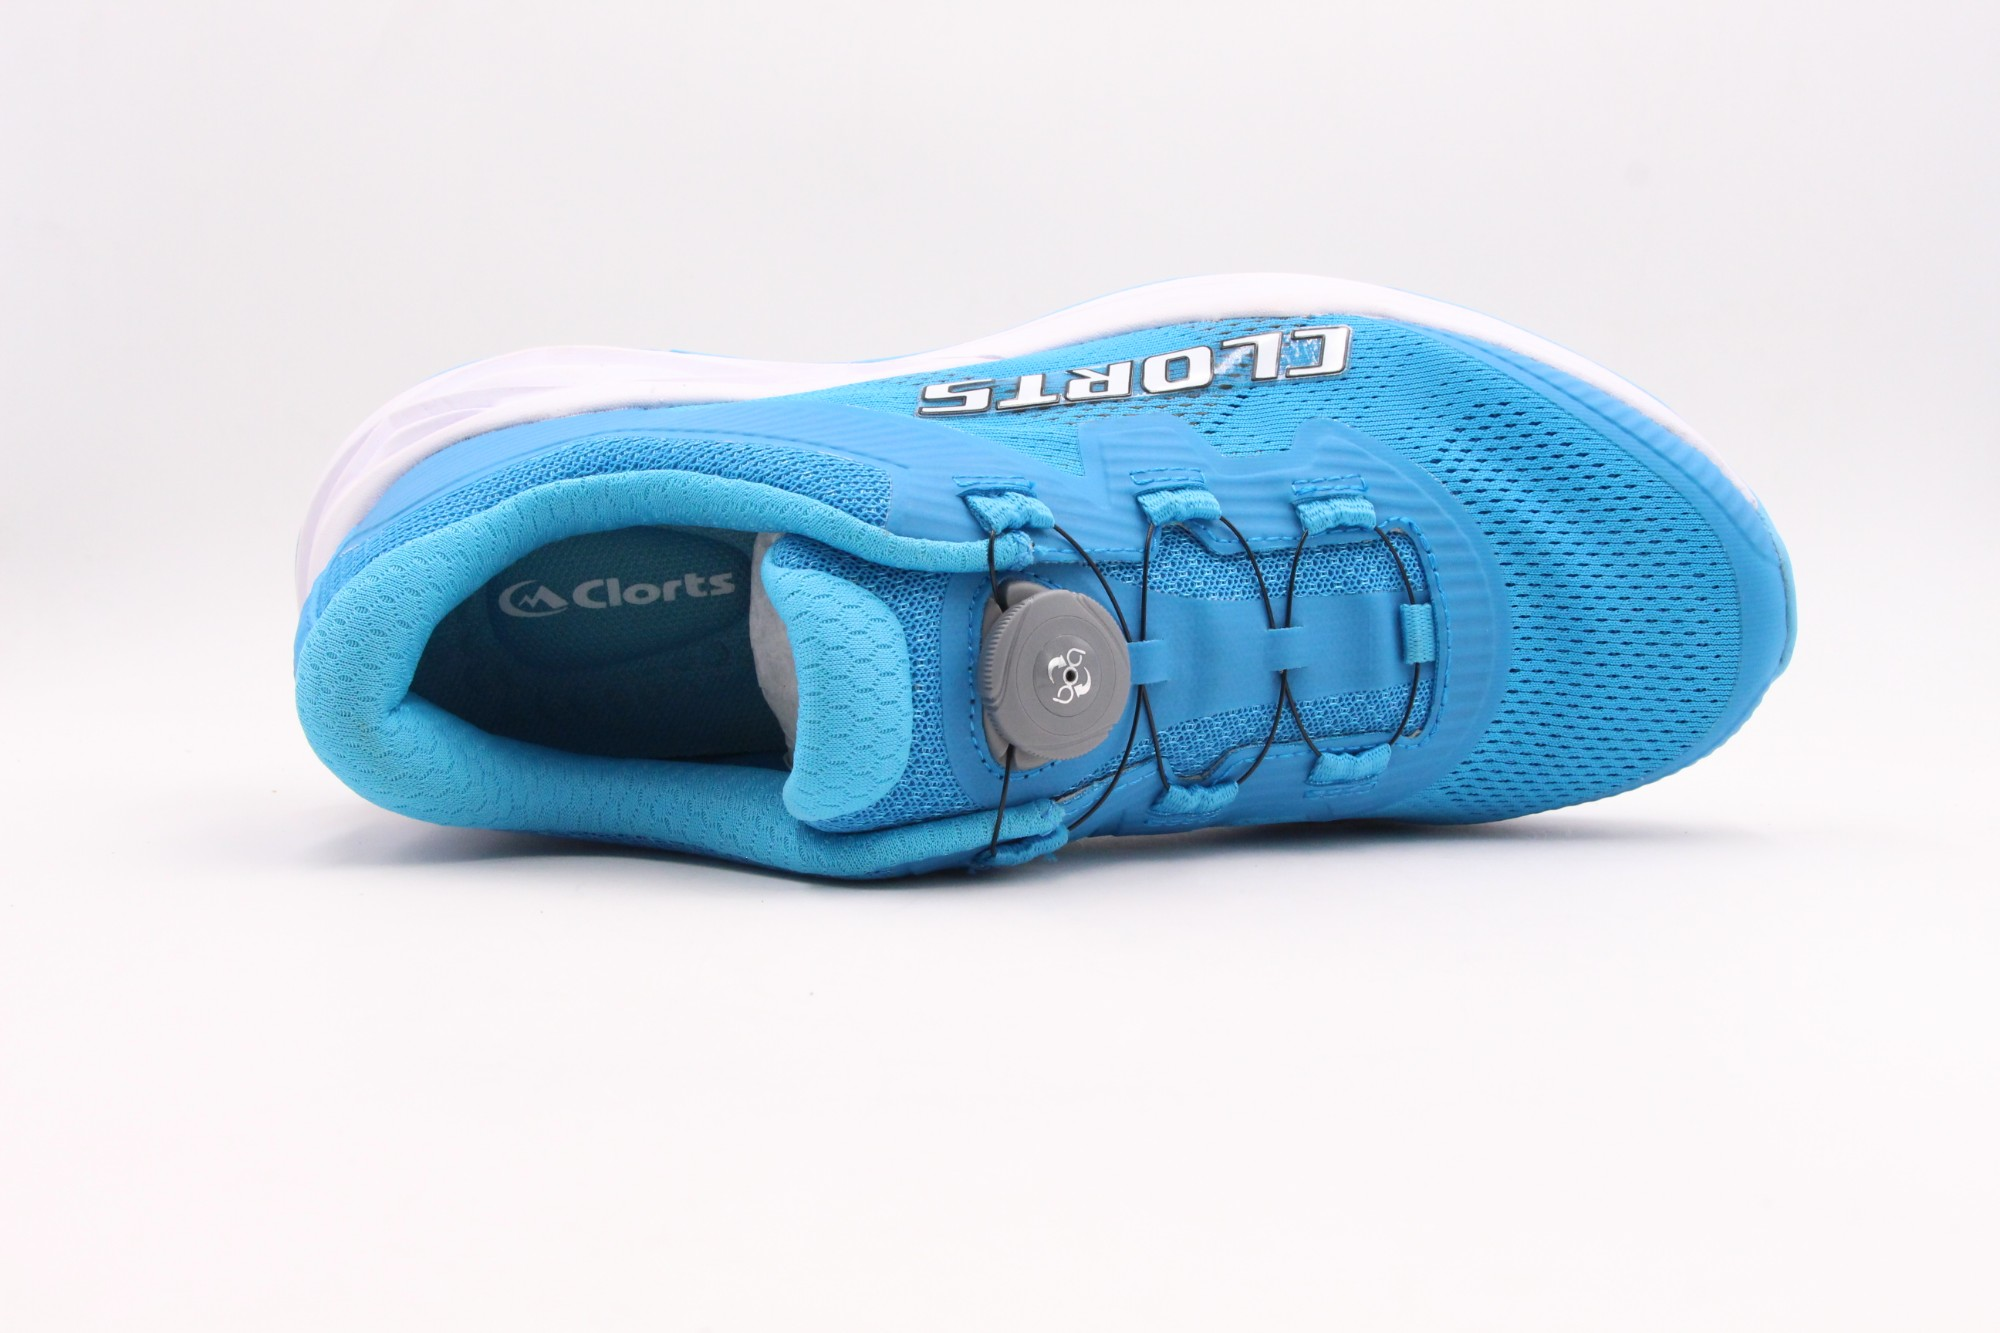 Clorts Womens Fashion BOA Lace-closure Running Shoes Manufacturers, Clorts Womens Fashion BOA Lace-closure Running Shoes Factory, Supply Clorts Womens Fashion BOA Lace-closure Running Shoes